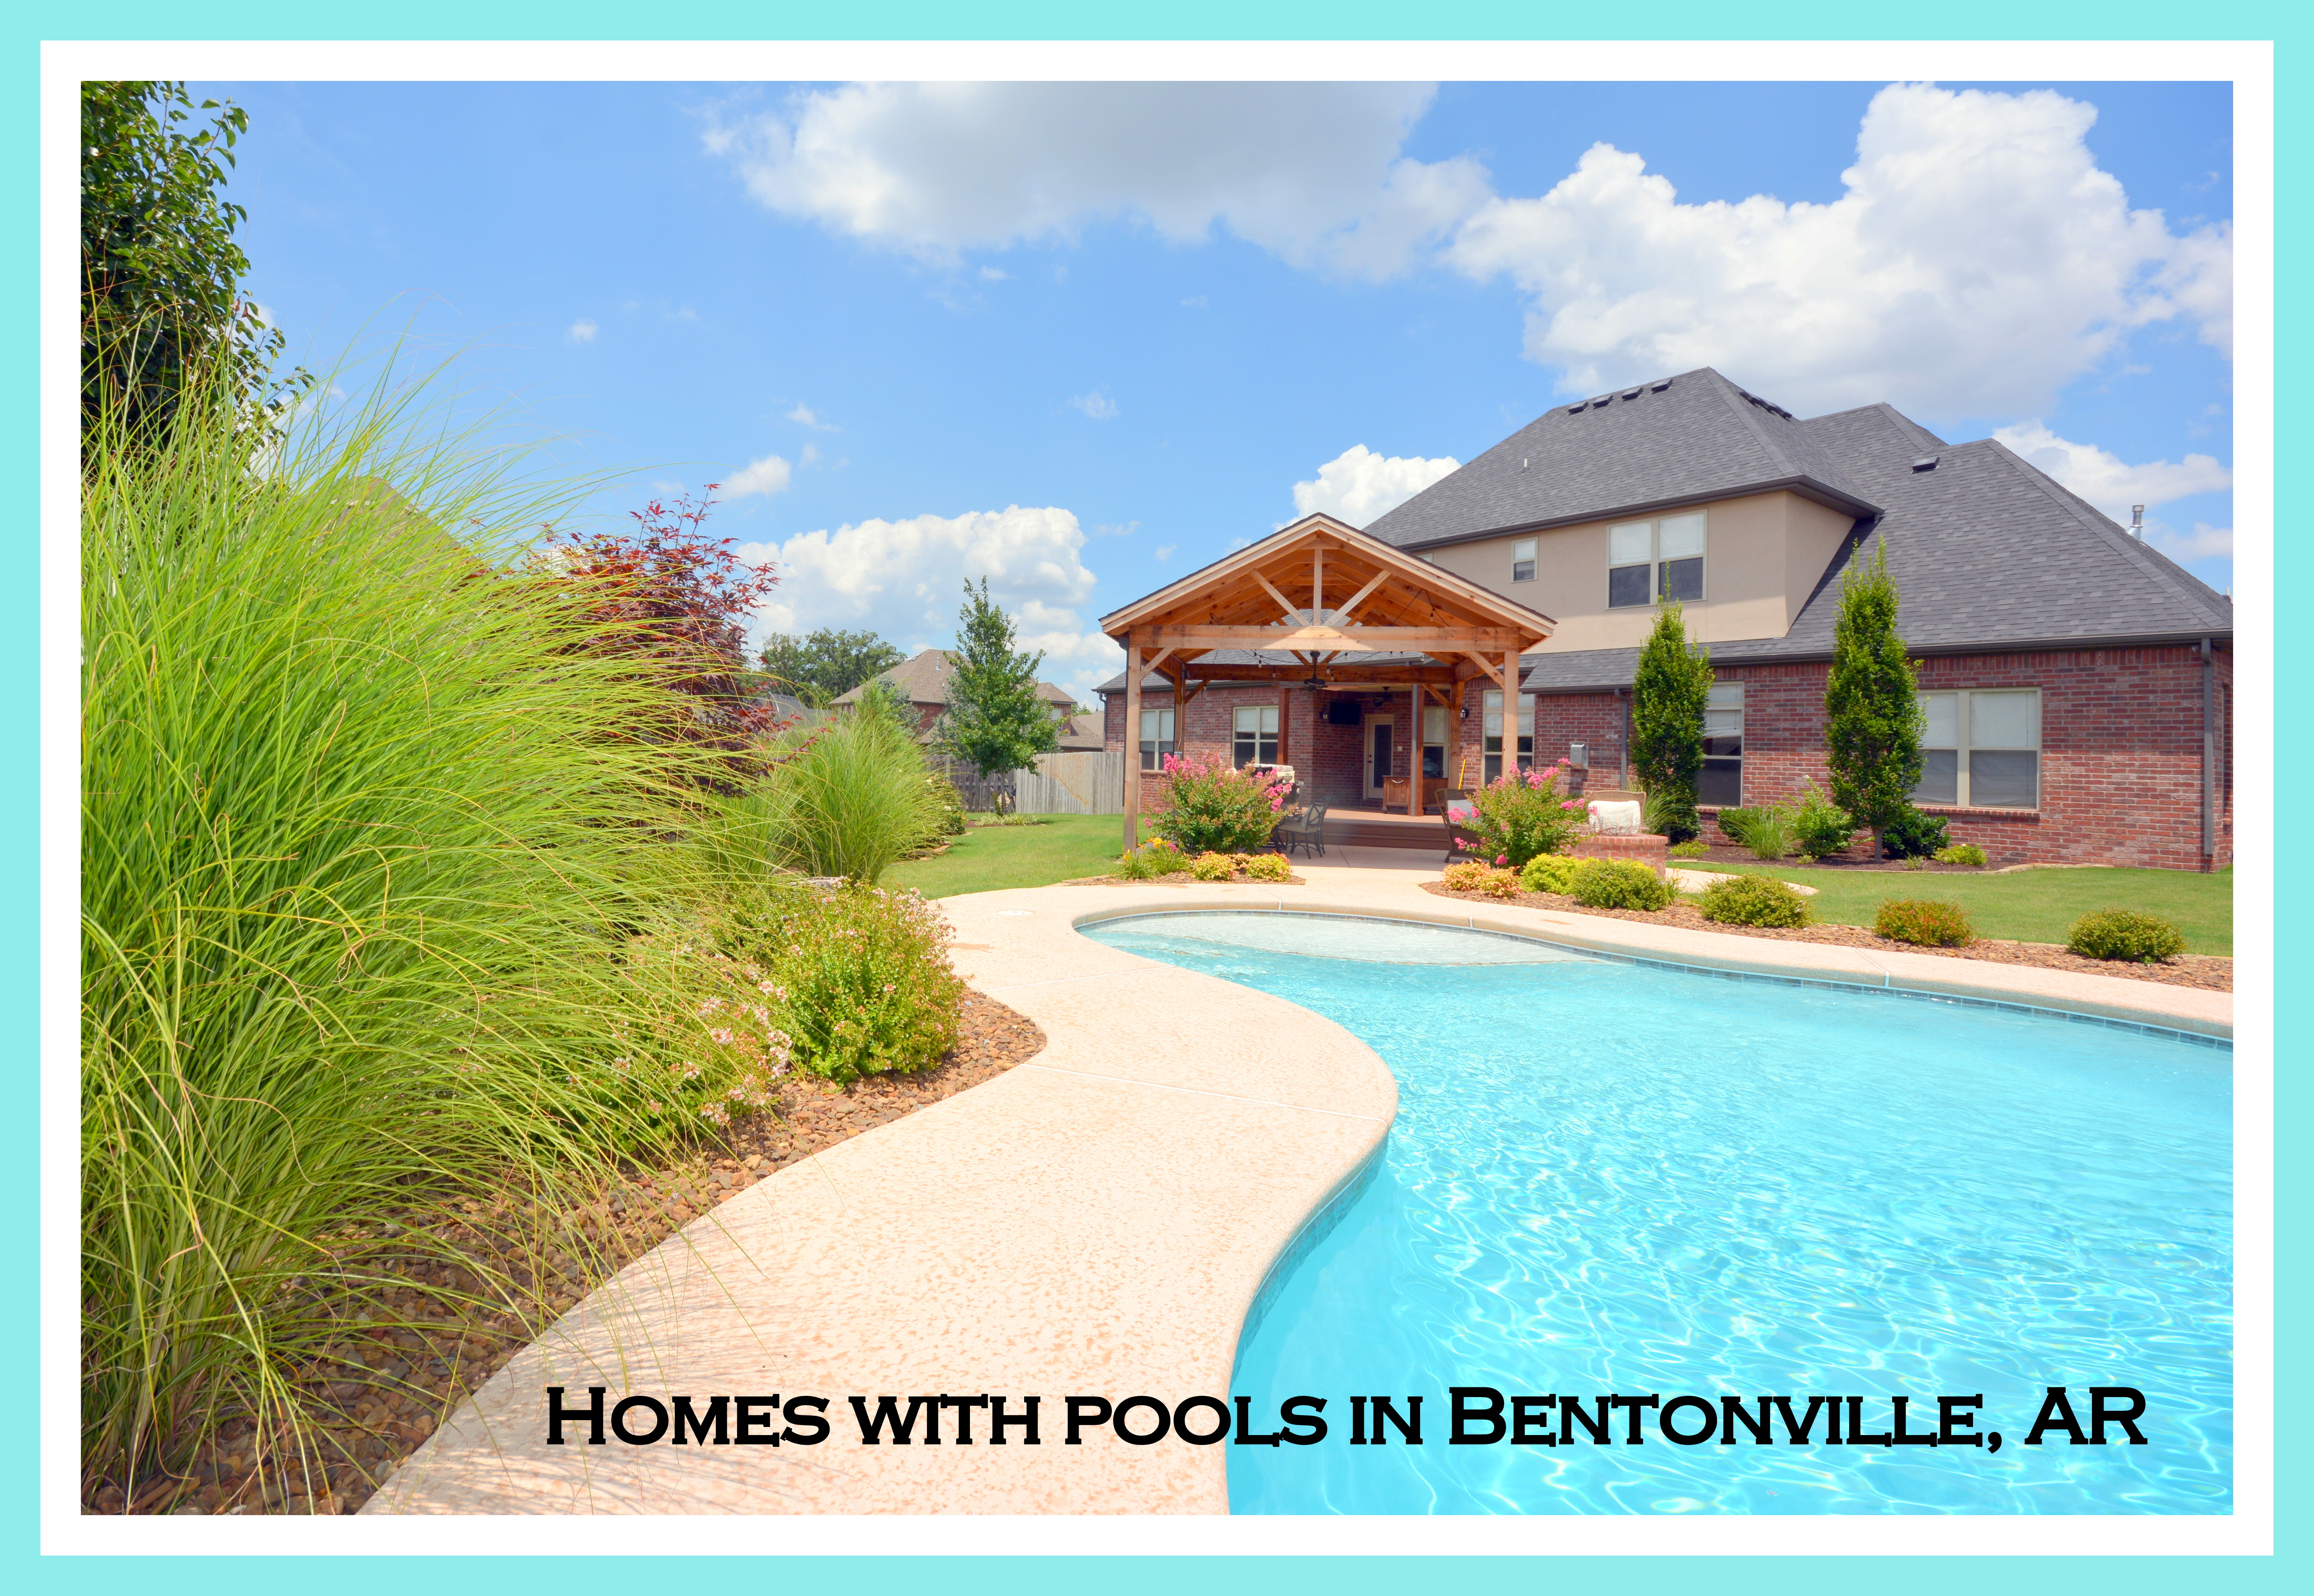 Bentonville homes for sale with pools for Bentonville pool